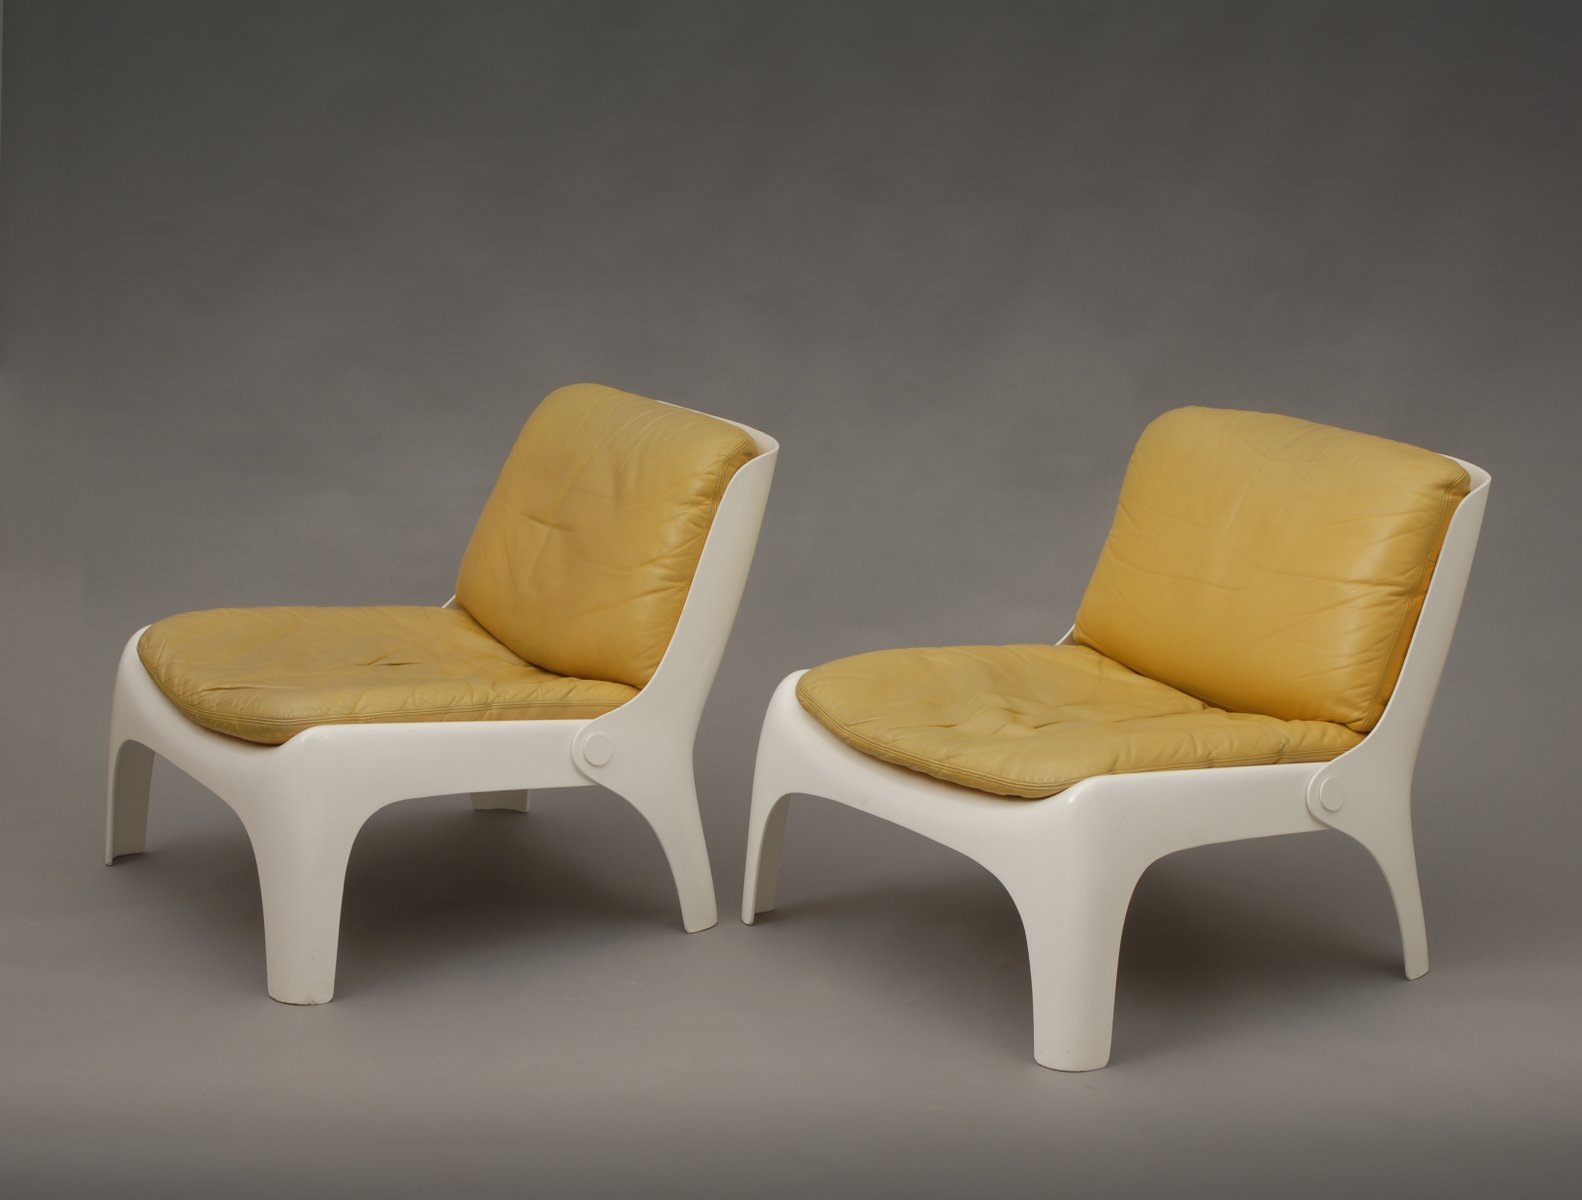 easy fiberglass chairs s set of  for sale at pamono - previous